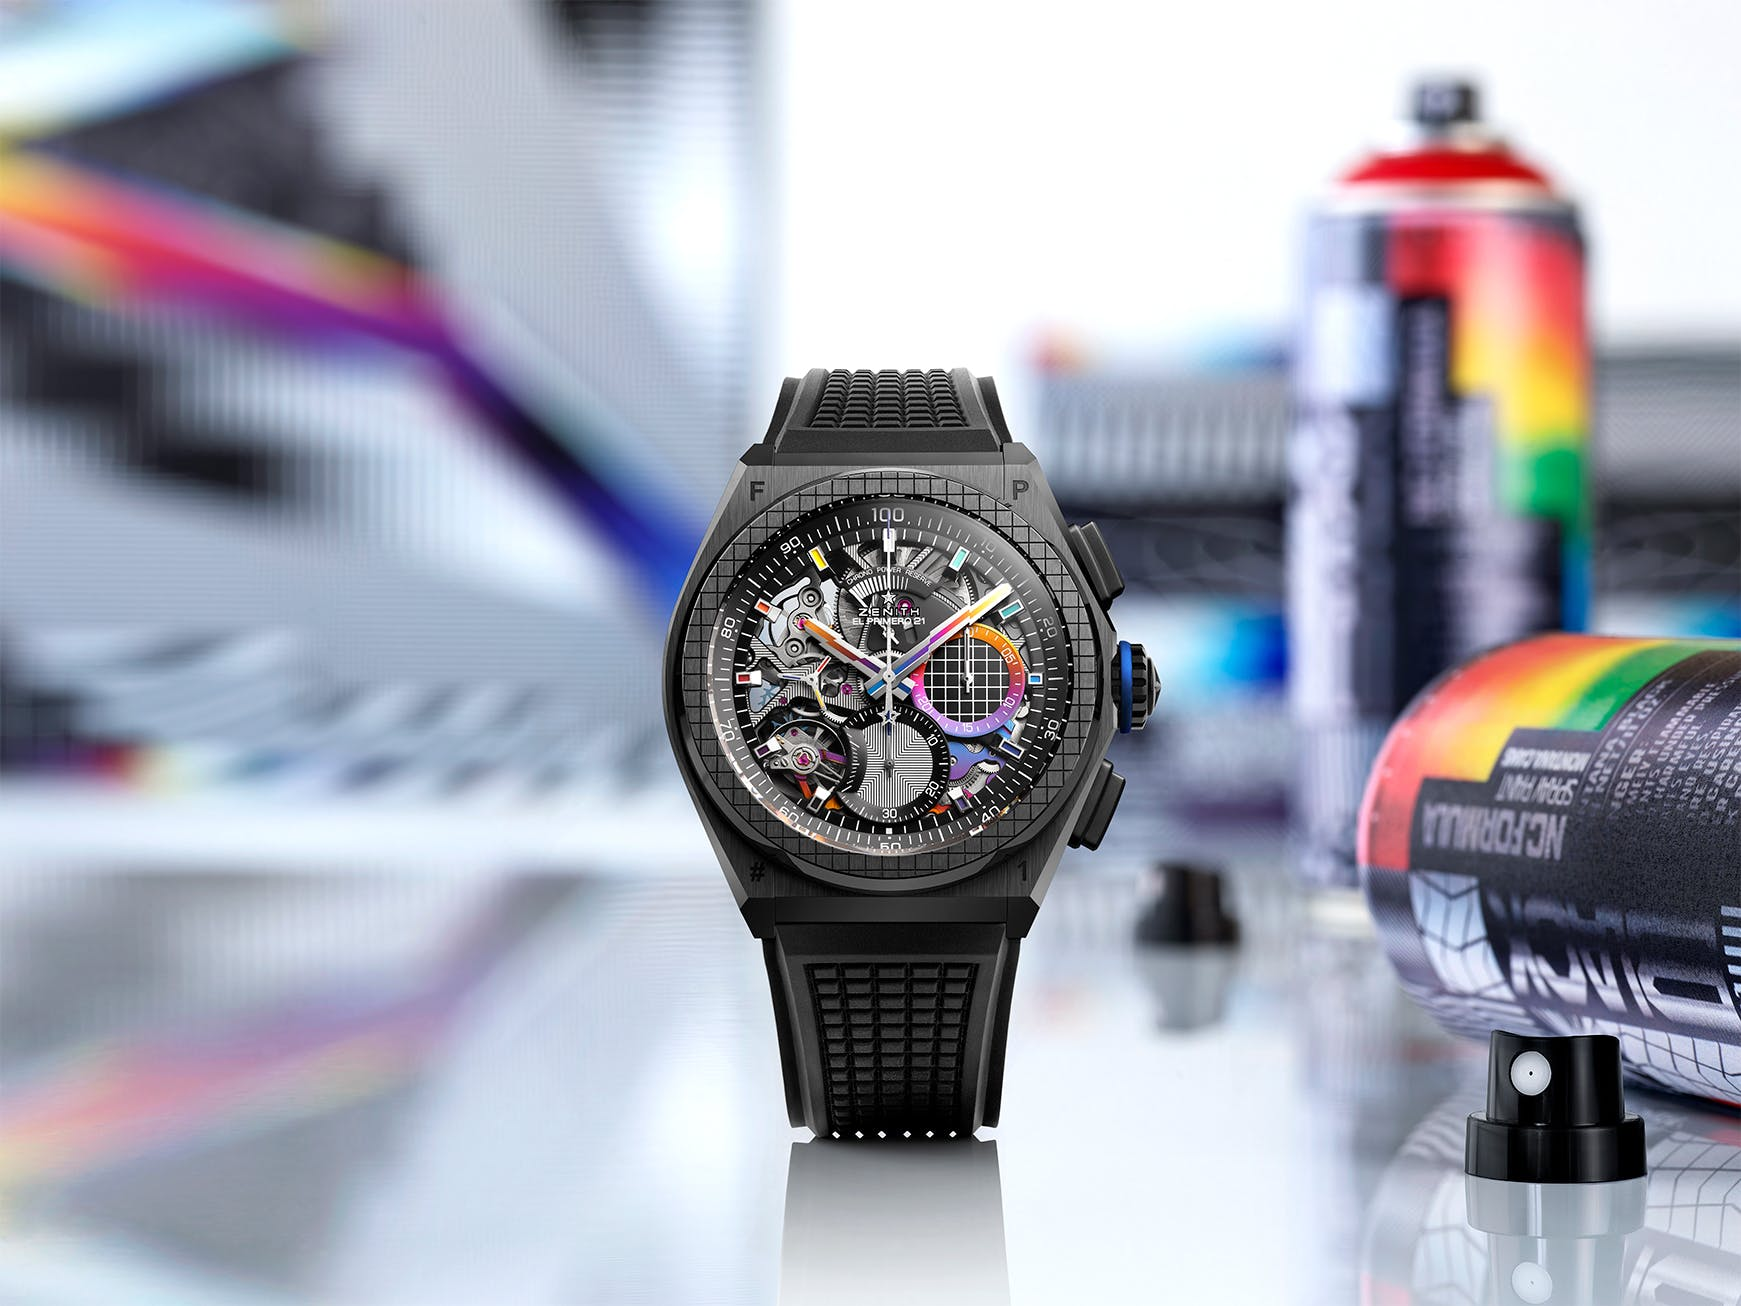 ZENITH AND FELIPE PANTONE COLLABORATE TO CREATE THE MANUFACTURE'S FIRST WATCH DESIGNED WITH A CONTEMPORARY ARTIST